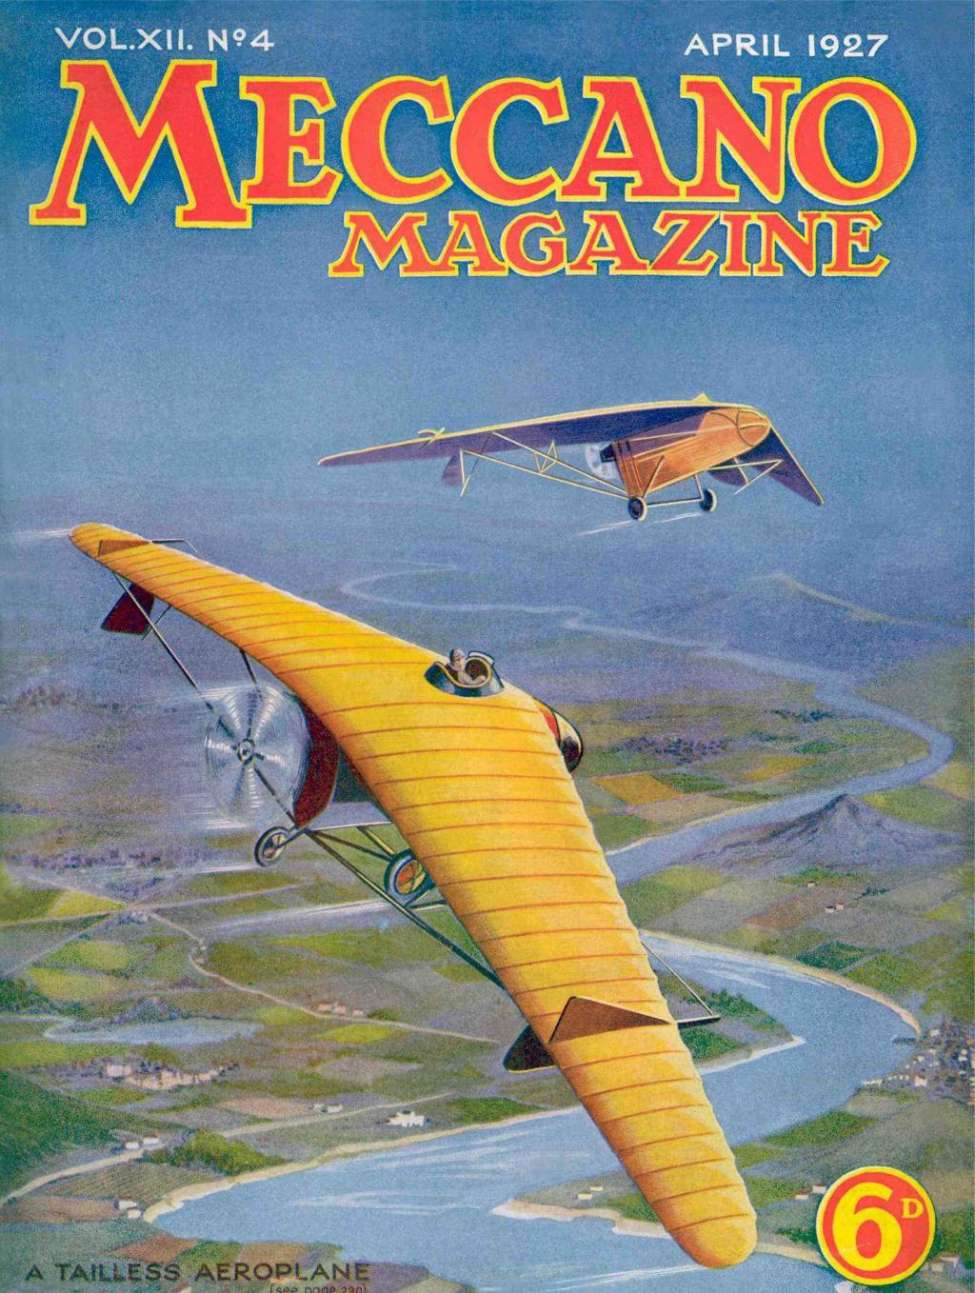 Comic Book Cover For Meccano Magazine v12 04